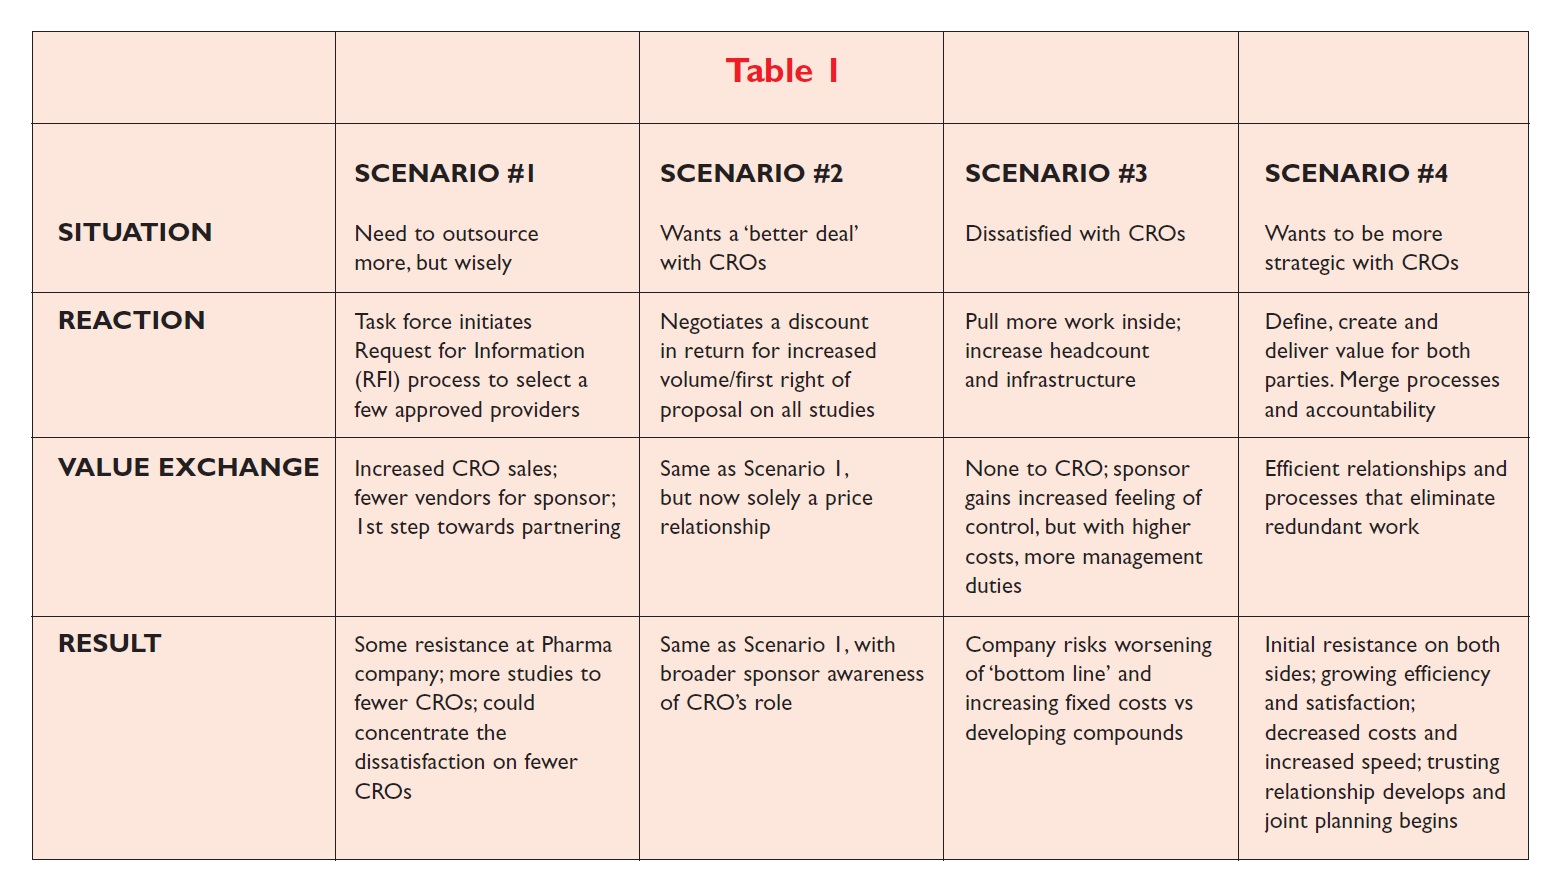 Table 1 Situation, reaction, value eachange, and result